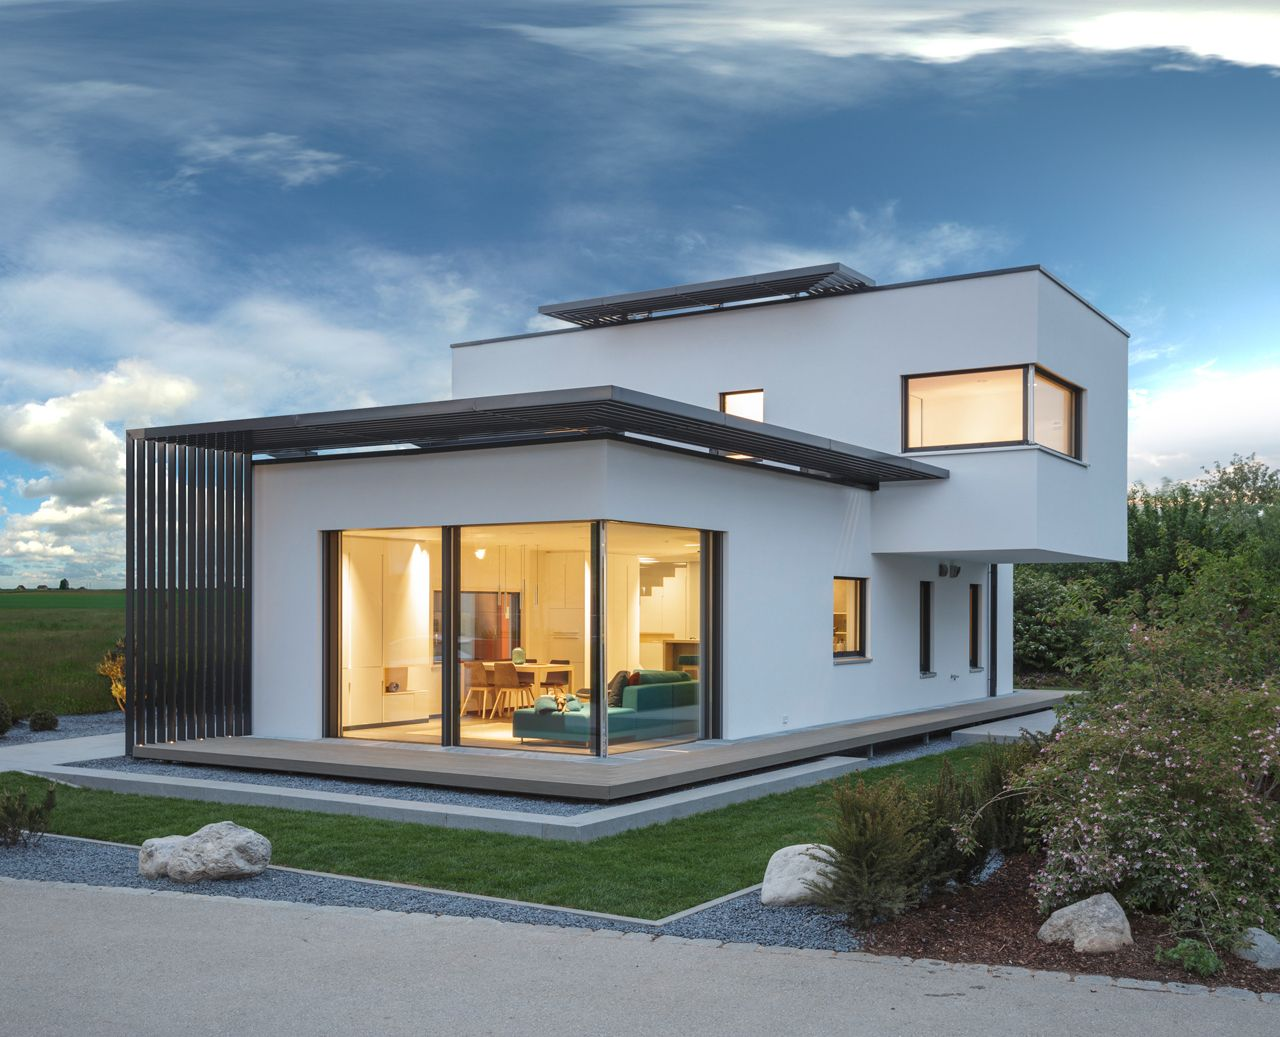 ^ 1000+ images about Haus on Pinterest House plans, Modern and Bauhaus